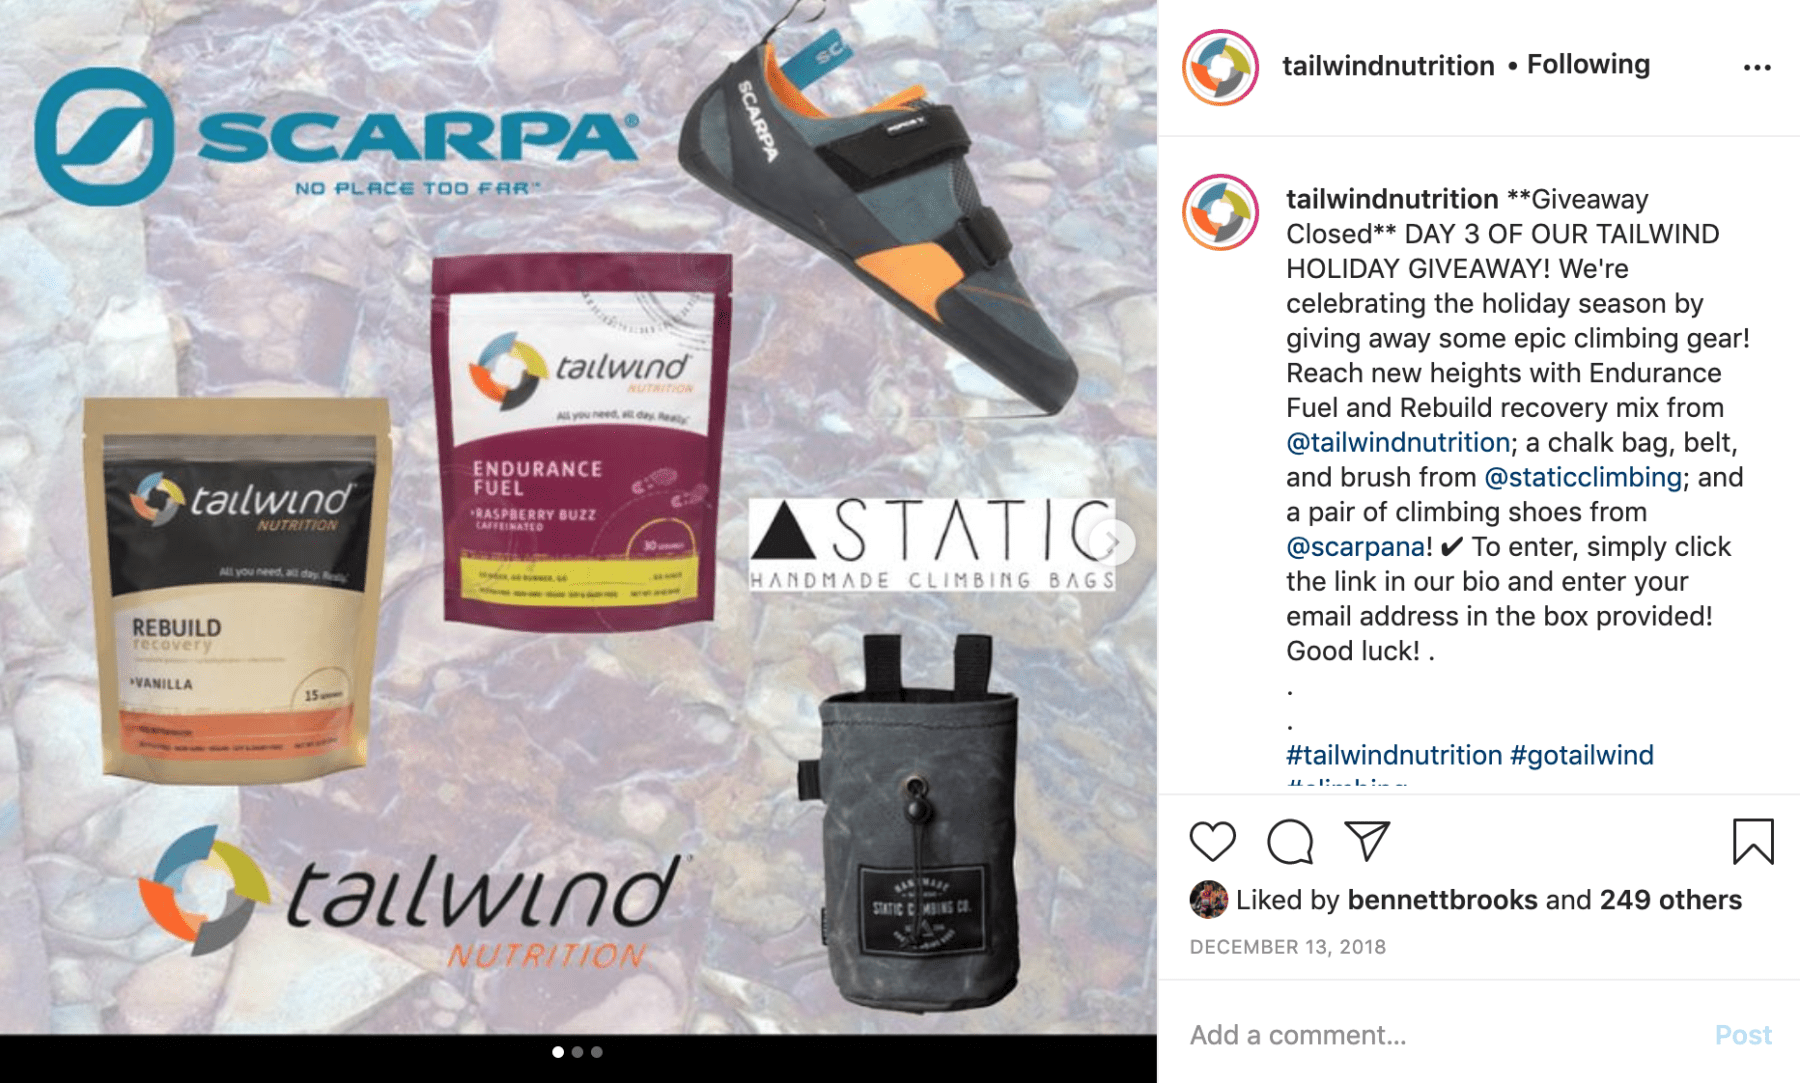 An Instagram post from Tailwind about a climbing-themed holiday giveaway.